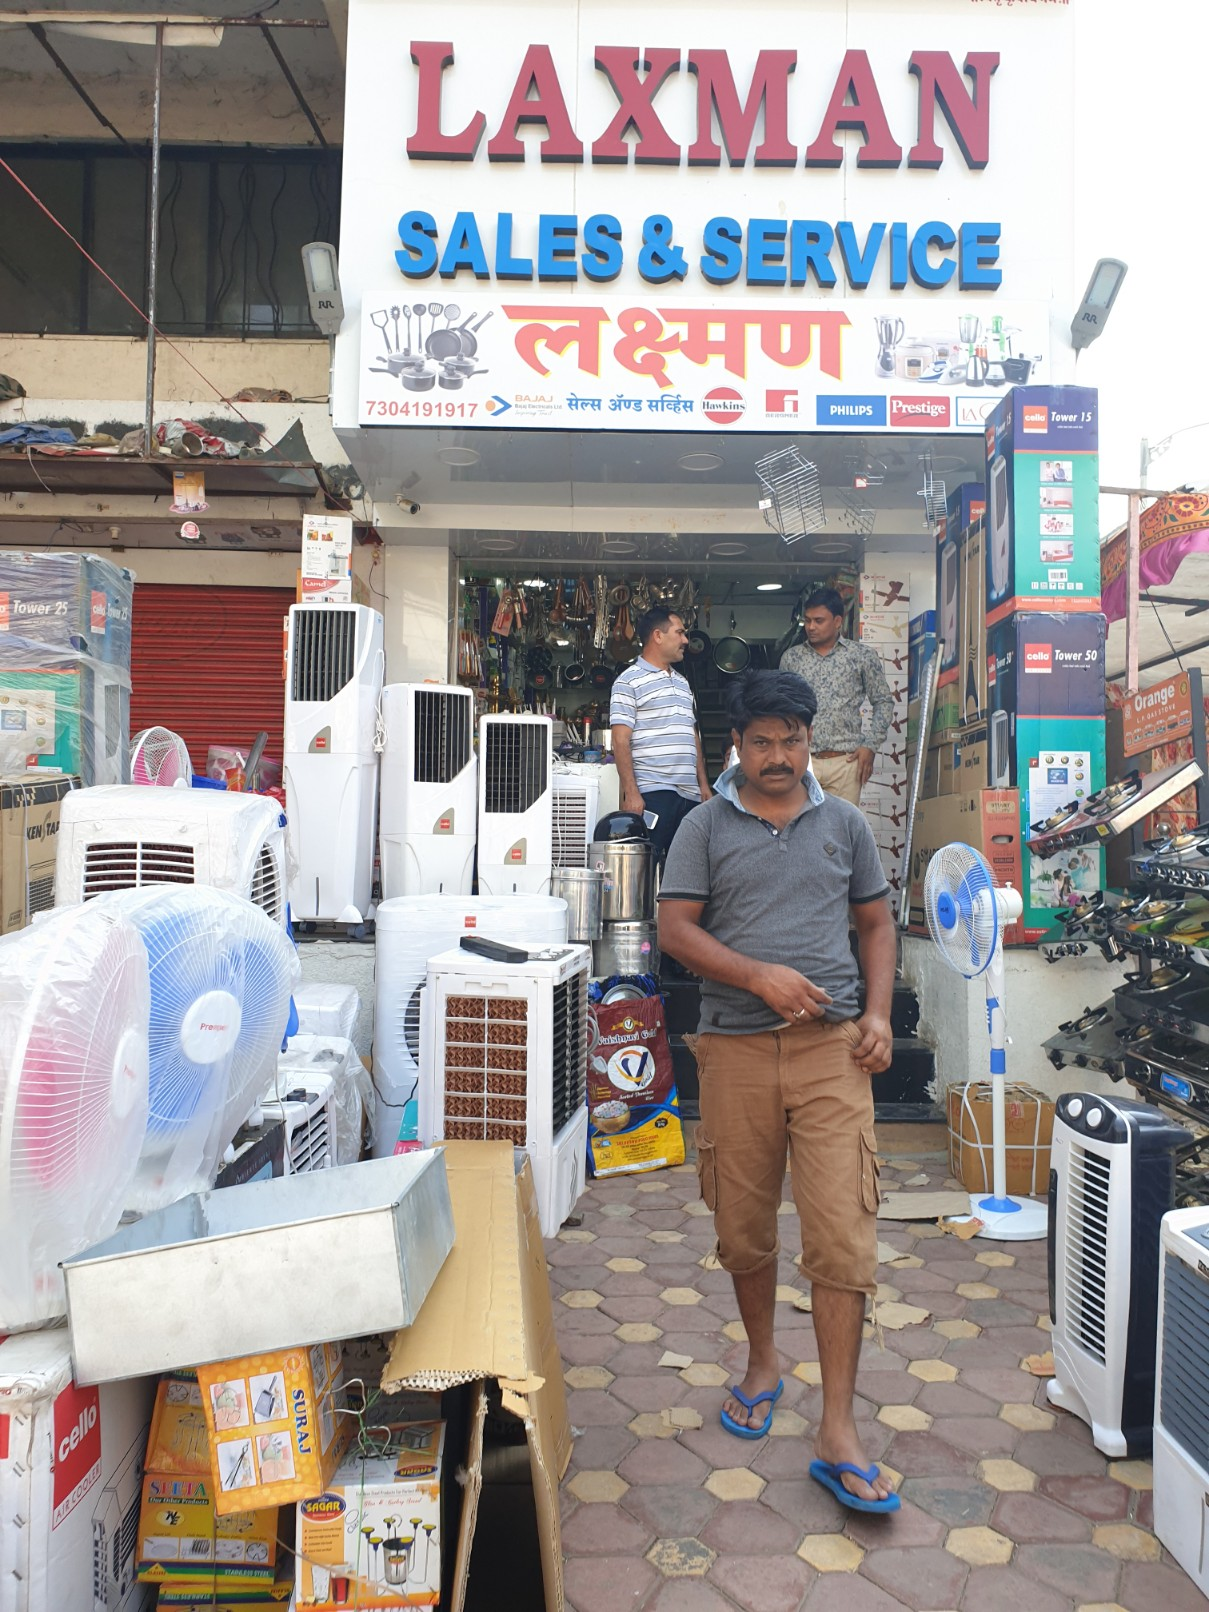 Laxman sales and service Electrical And Sanitary in Ghorpadi Pune